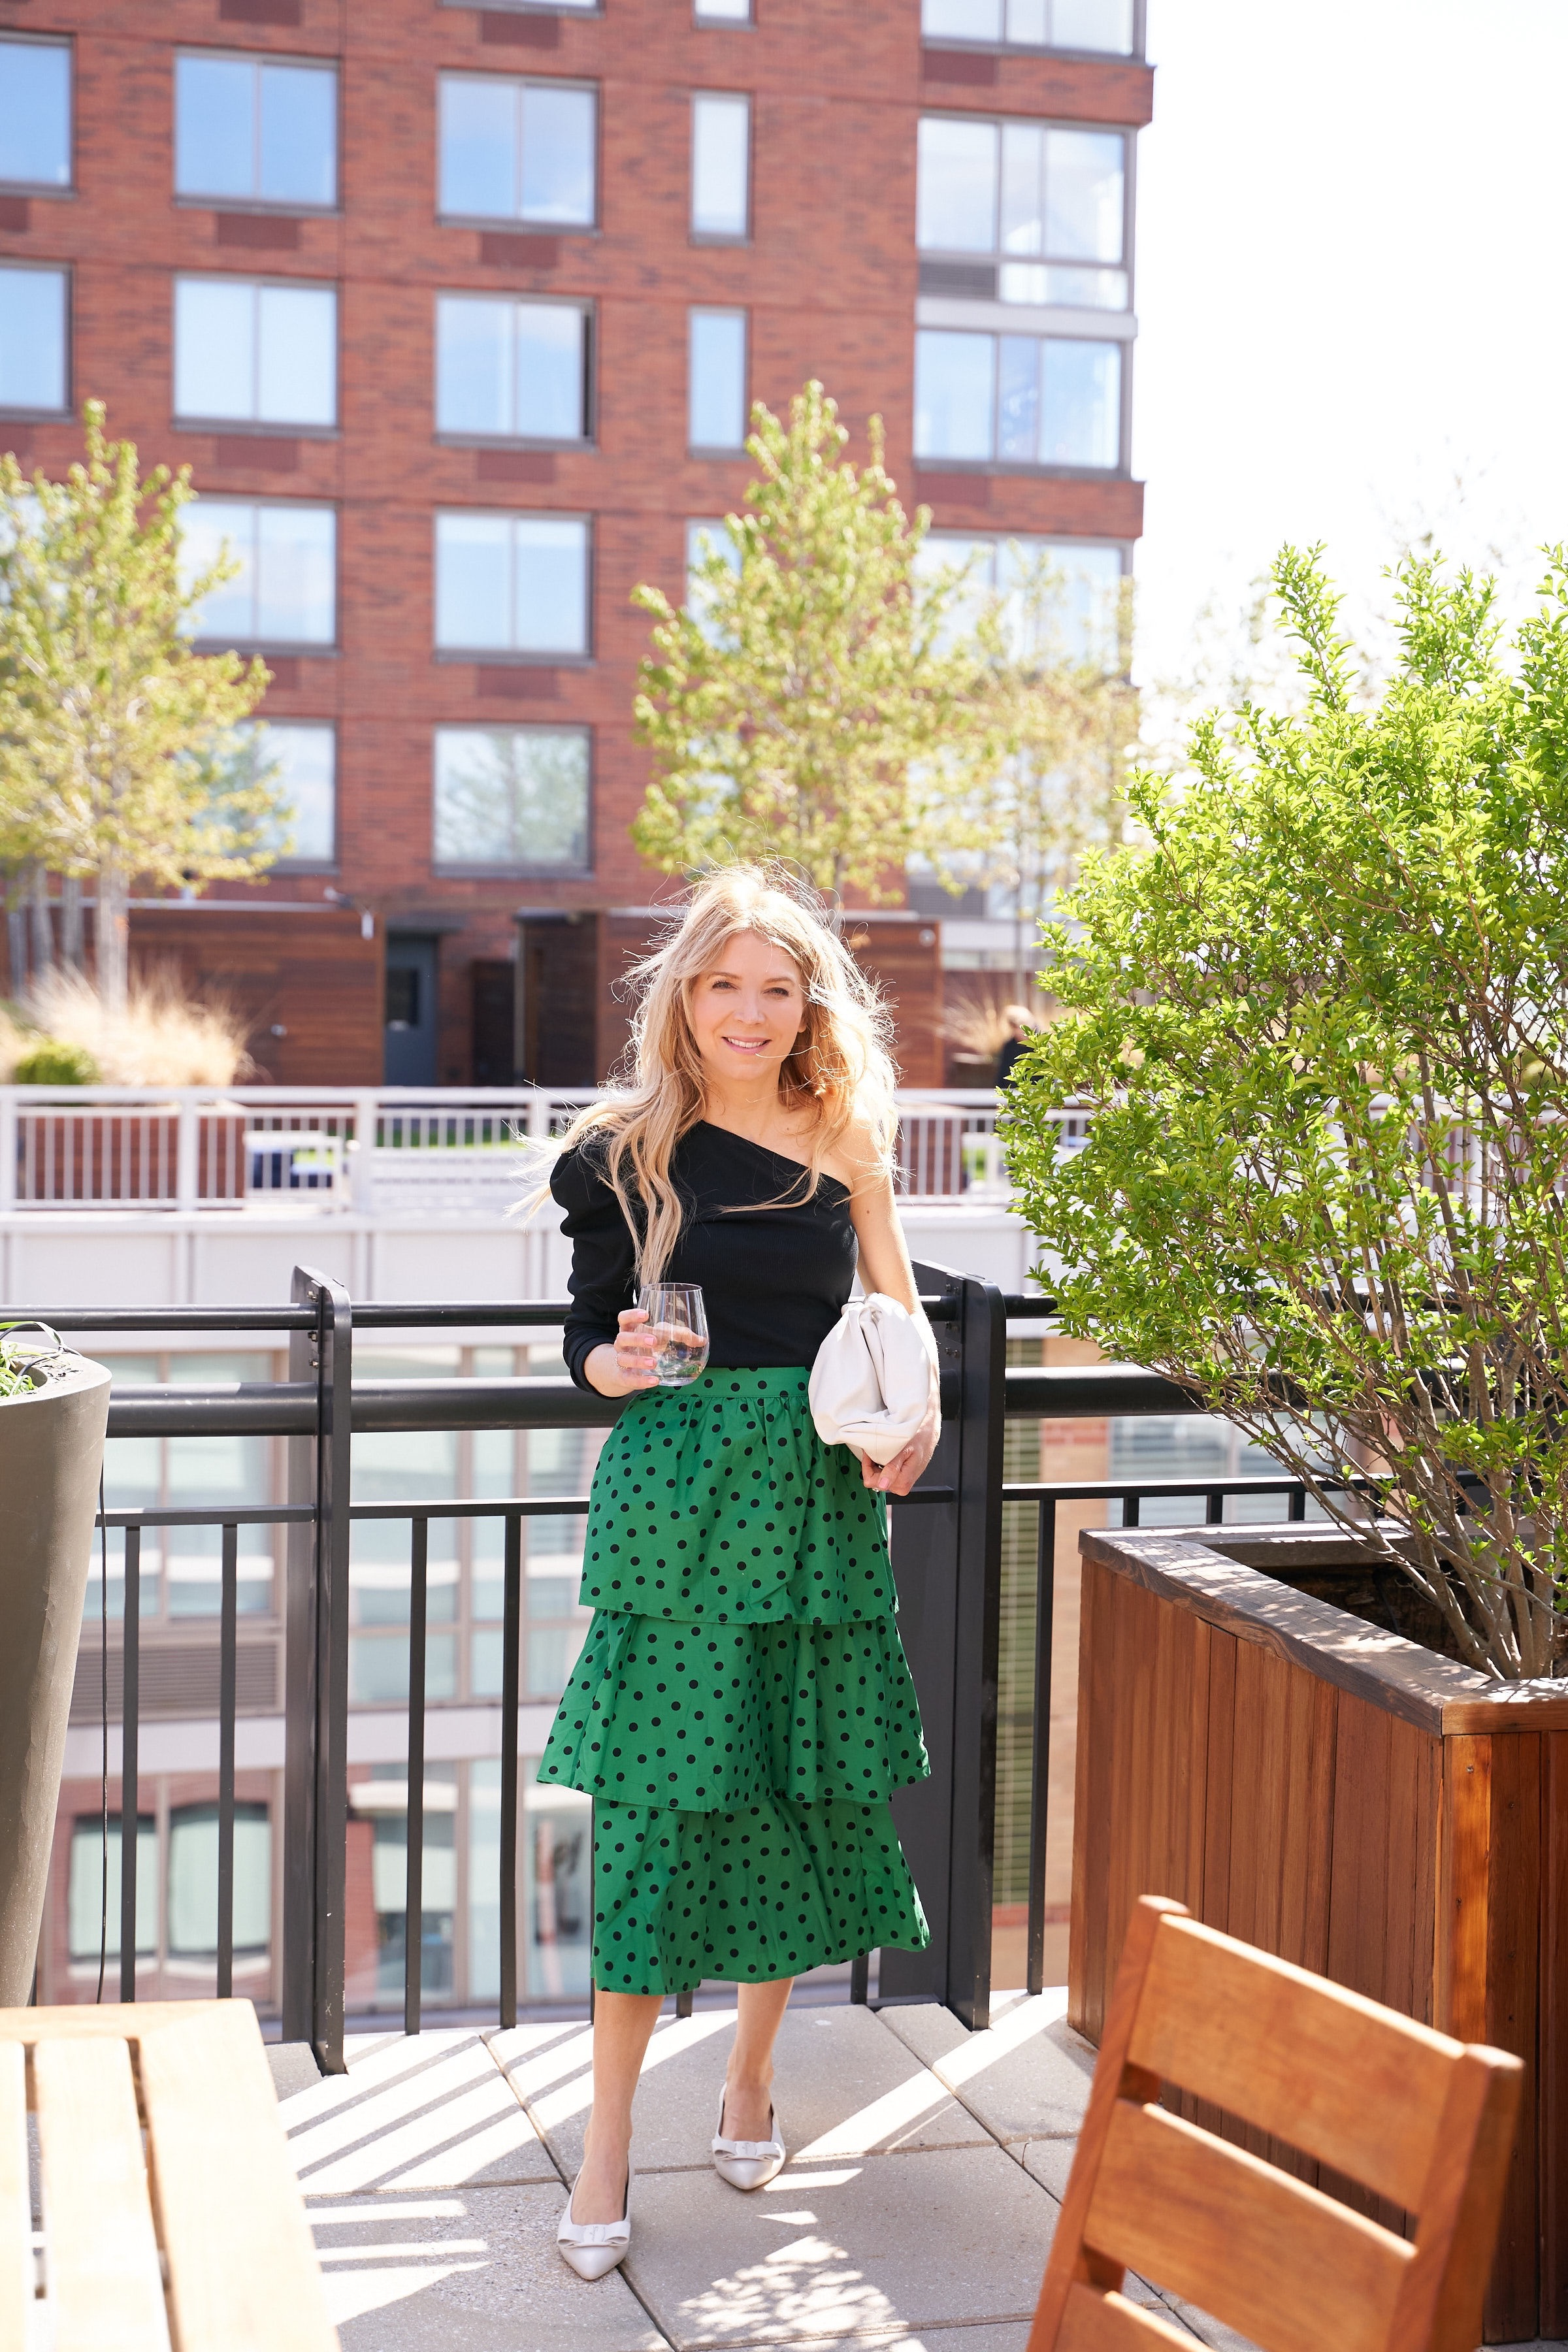 About the Outfits, Laura Bonner, Targetstyle, Target fashion finds, green skirt, Salvatore Ferragamo Viva flats